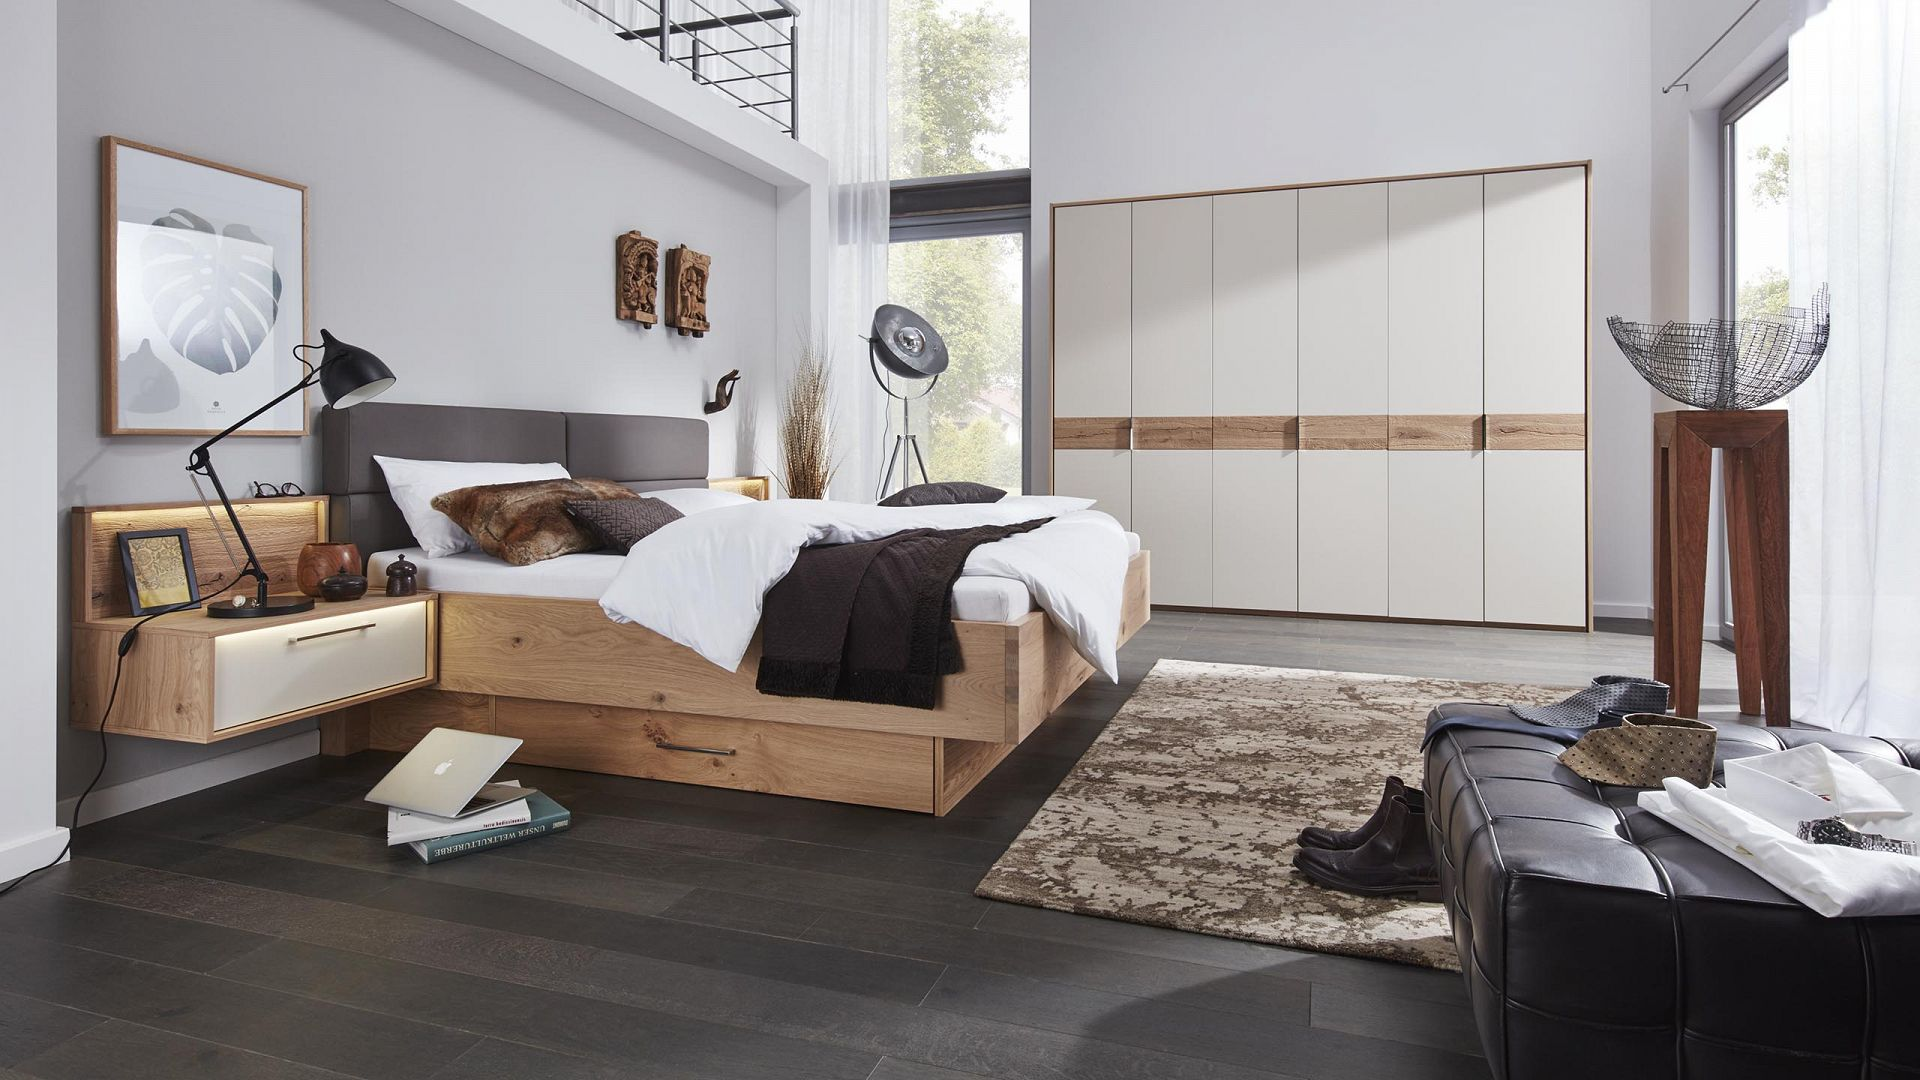 interliving schlafzimmer serie 1002 bett modern g nstig m bel schaumann. Black Bedroom Furniture Sets. Home Design Ideas